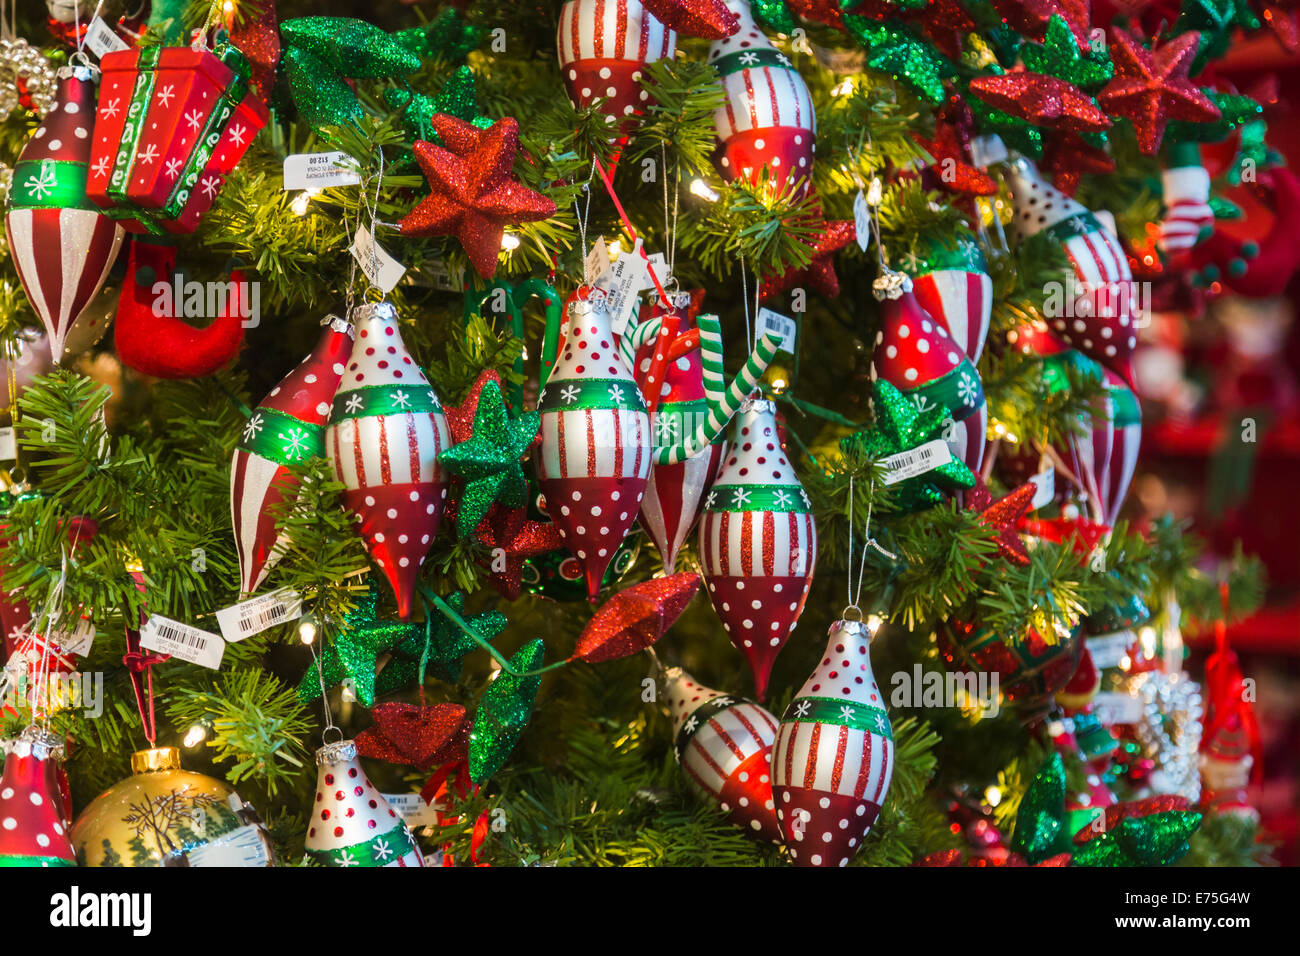 Colourful Red Green And White Christmas Decorations On A Xmas Tree Stock Photo Alamy